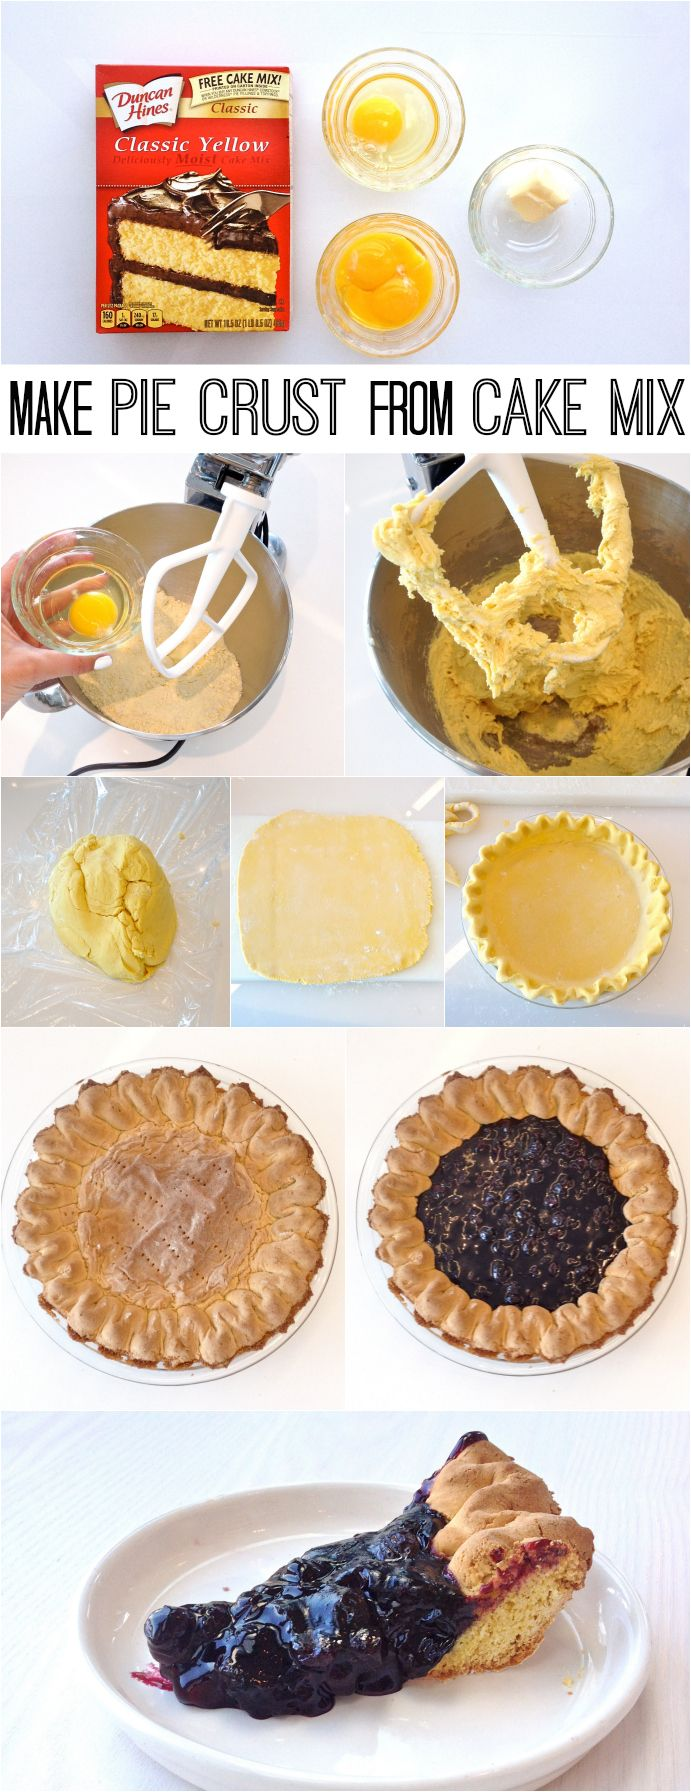 Here's how to use a box of cake mix to make a pie crust.